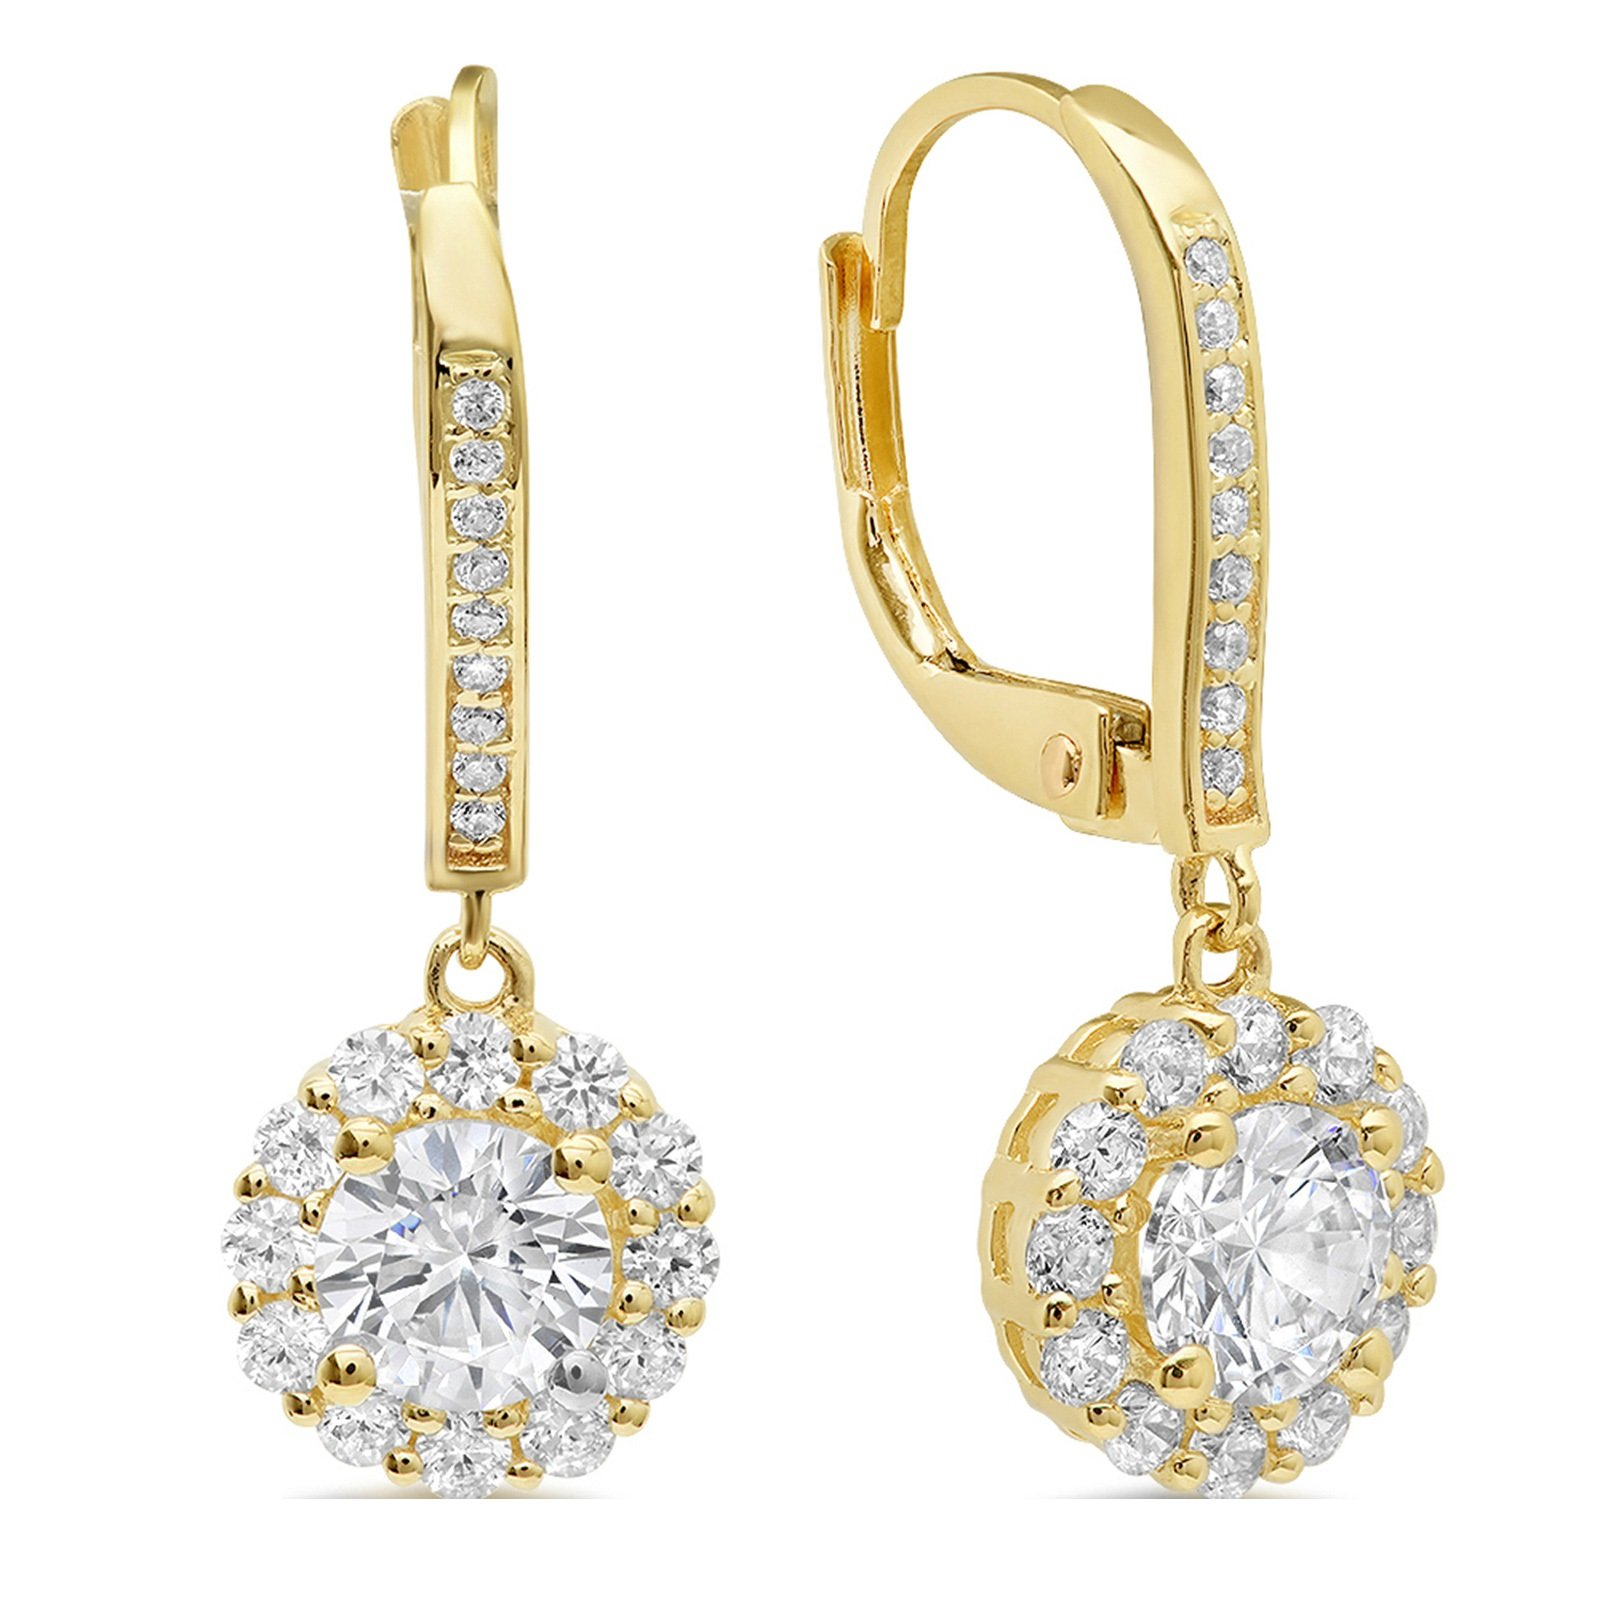 3.70 CT ROUND CUT Simulated Diamond Solitaire Halo PAVE DROP DANGLE LEVERBACK EARRINGS 14K Yellow GOLD